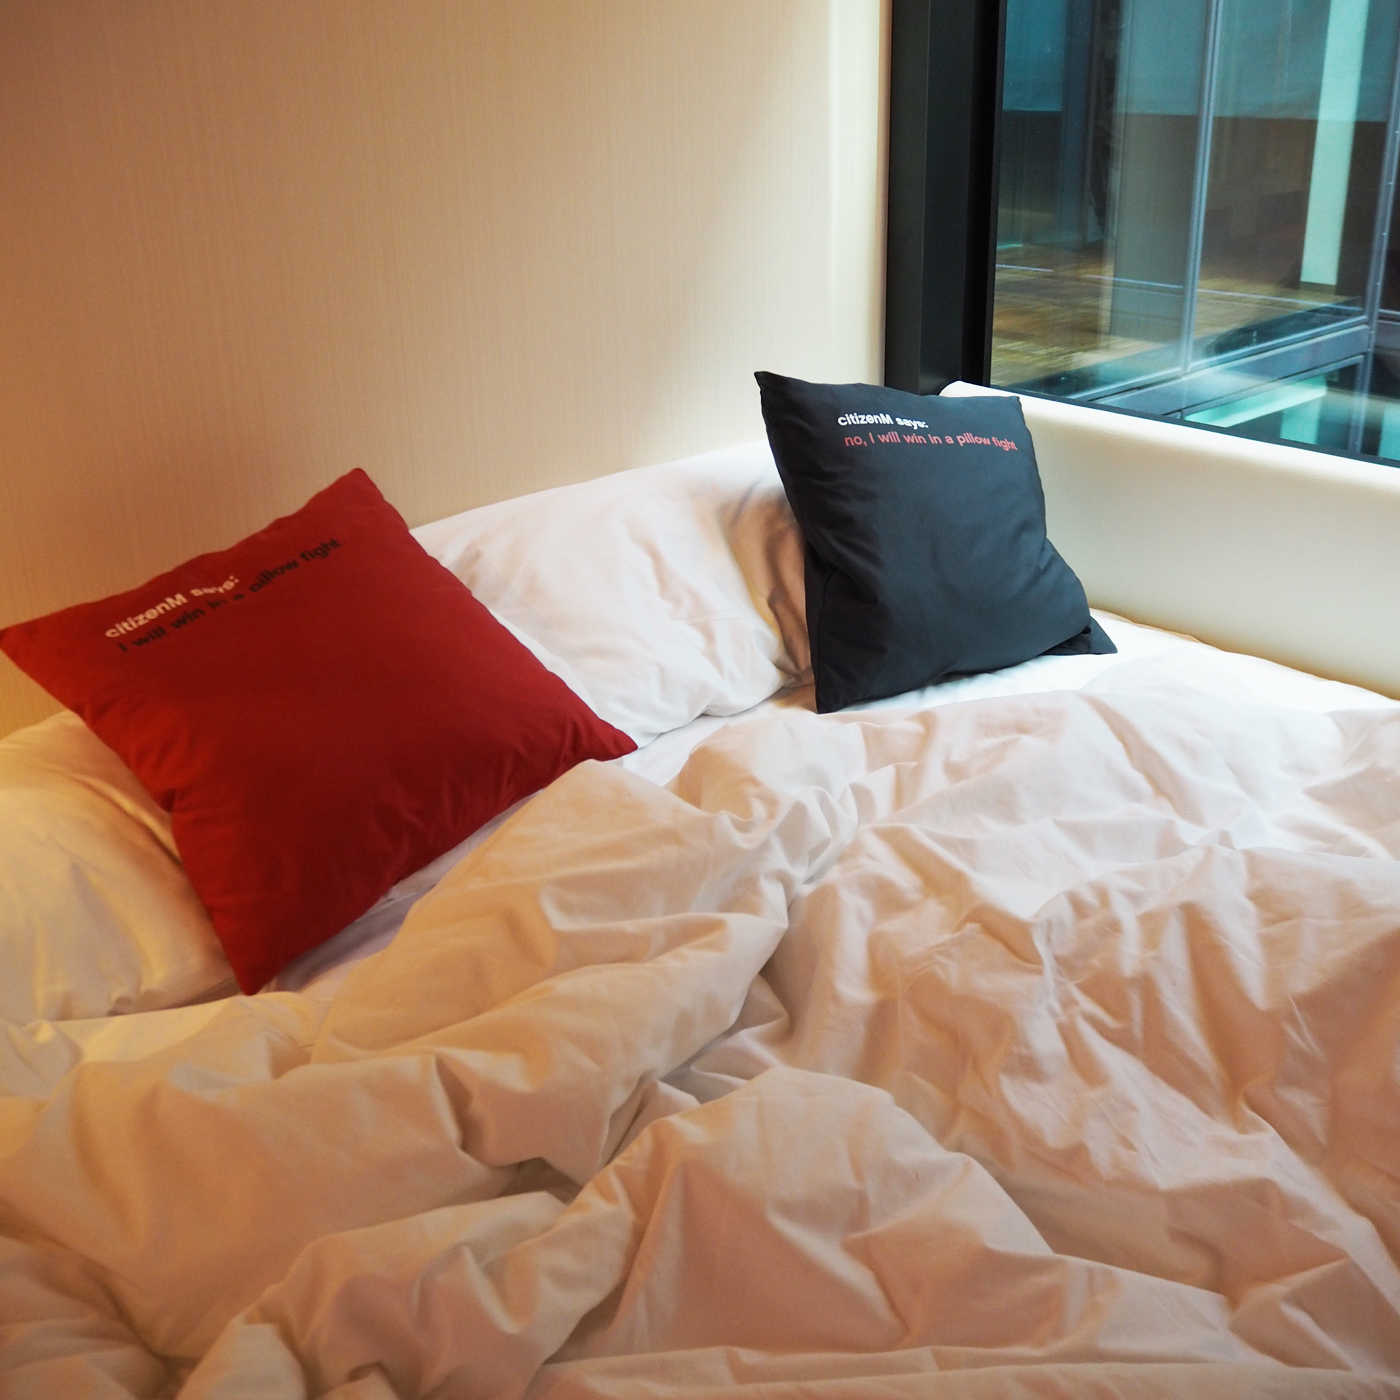 citizenM beds